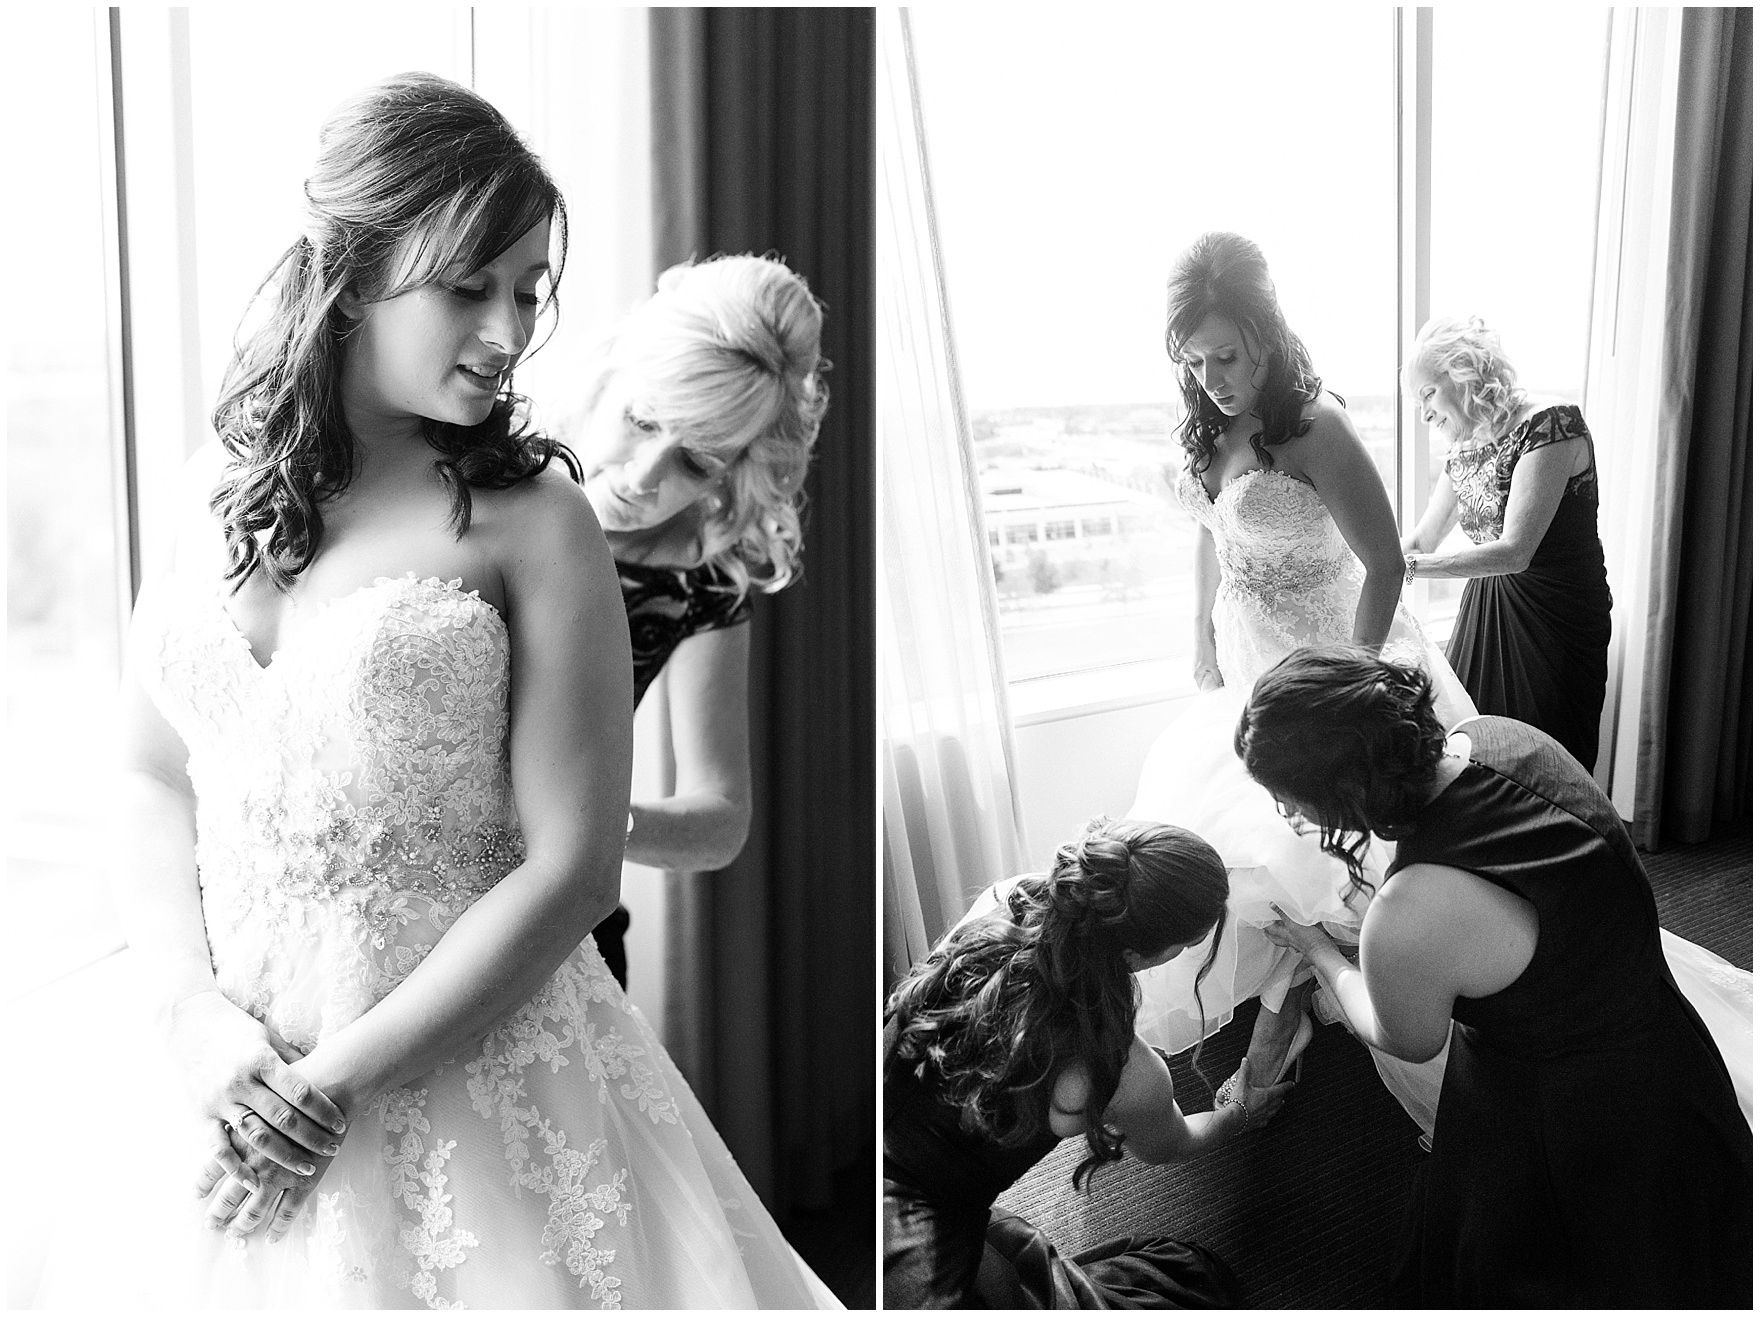 The bride gets ready for a Hotel Arista Naperville wedding.